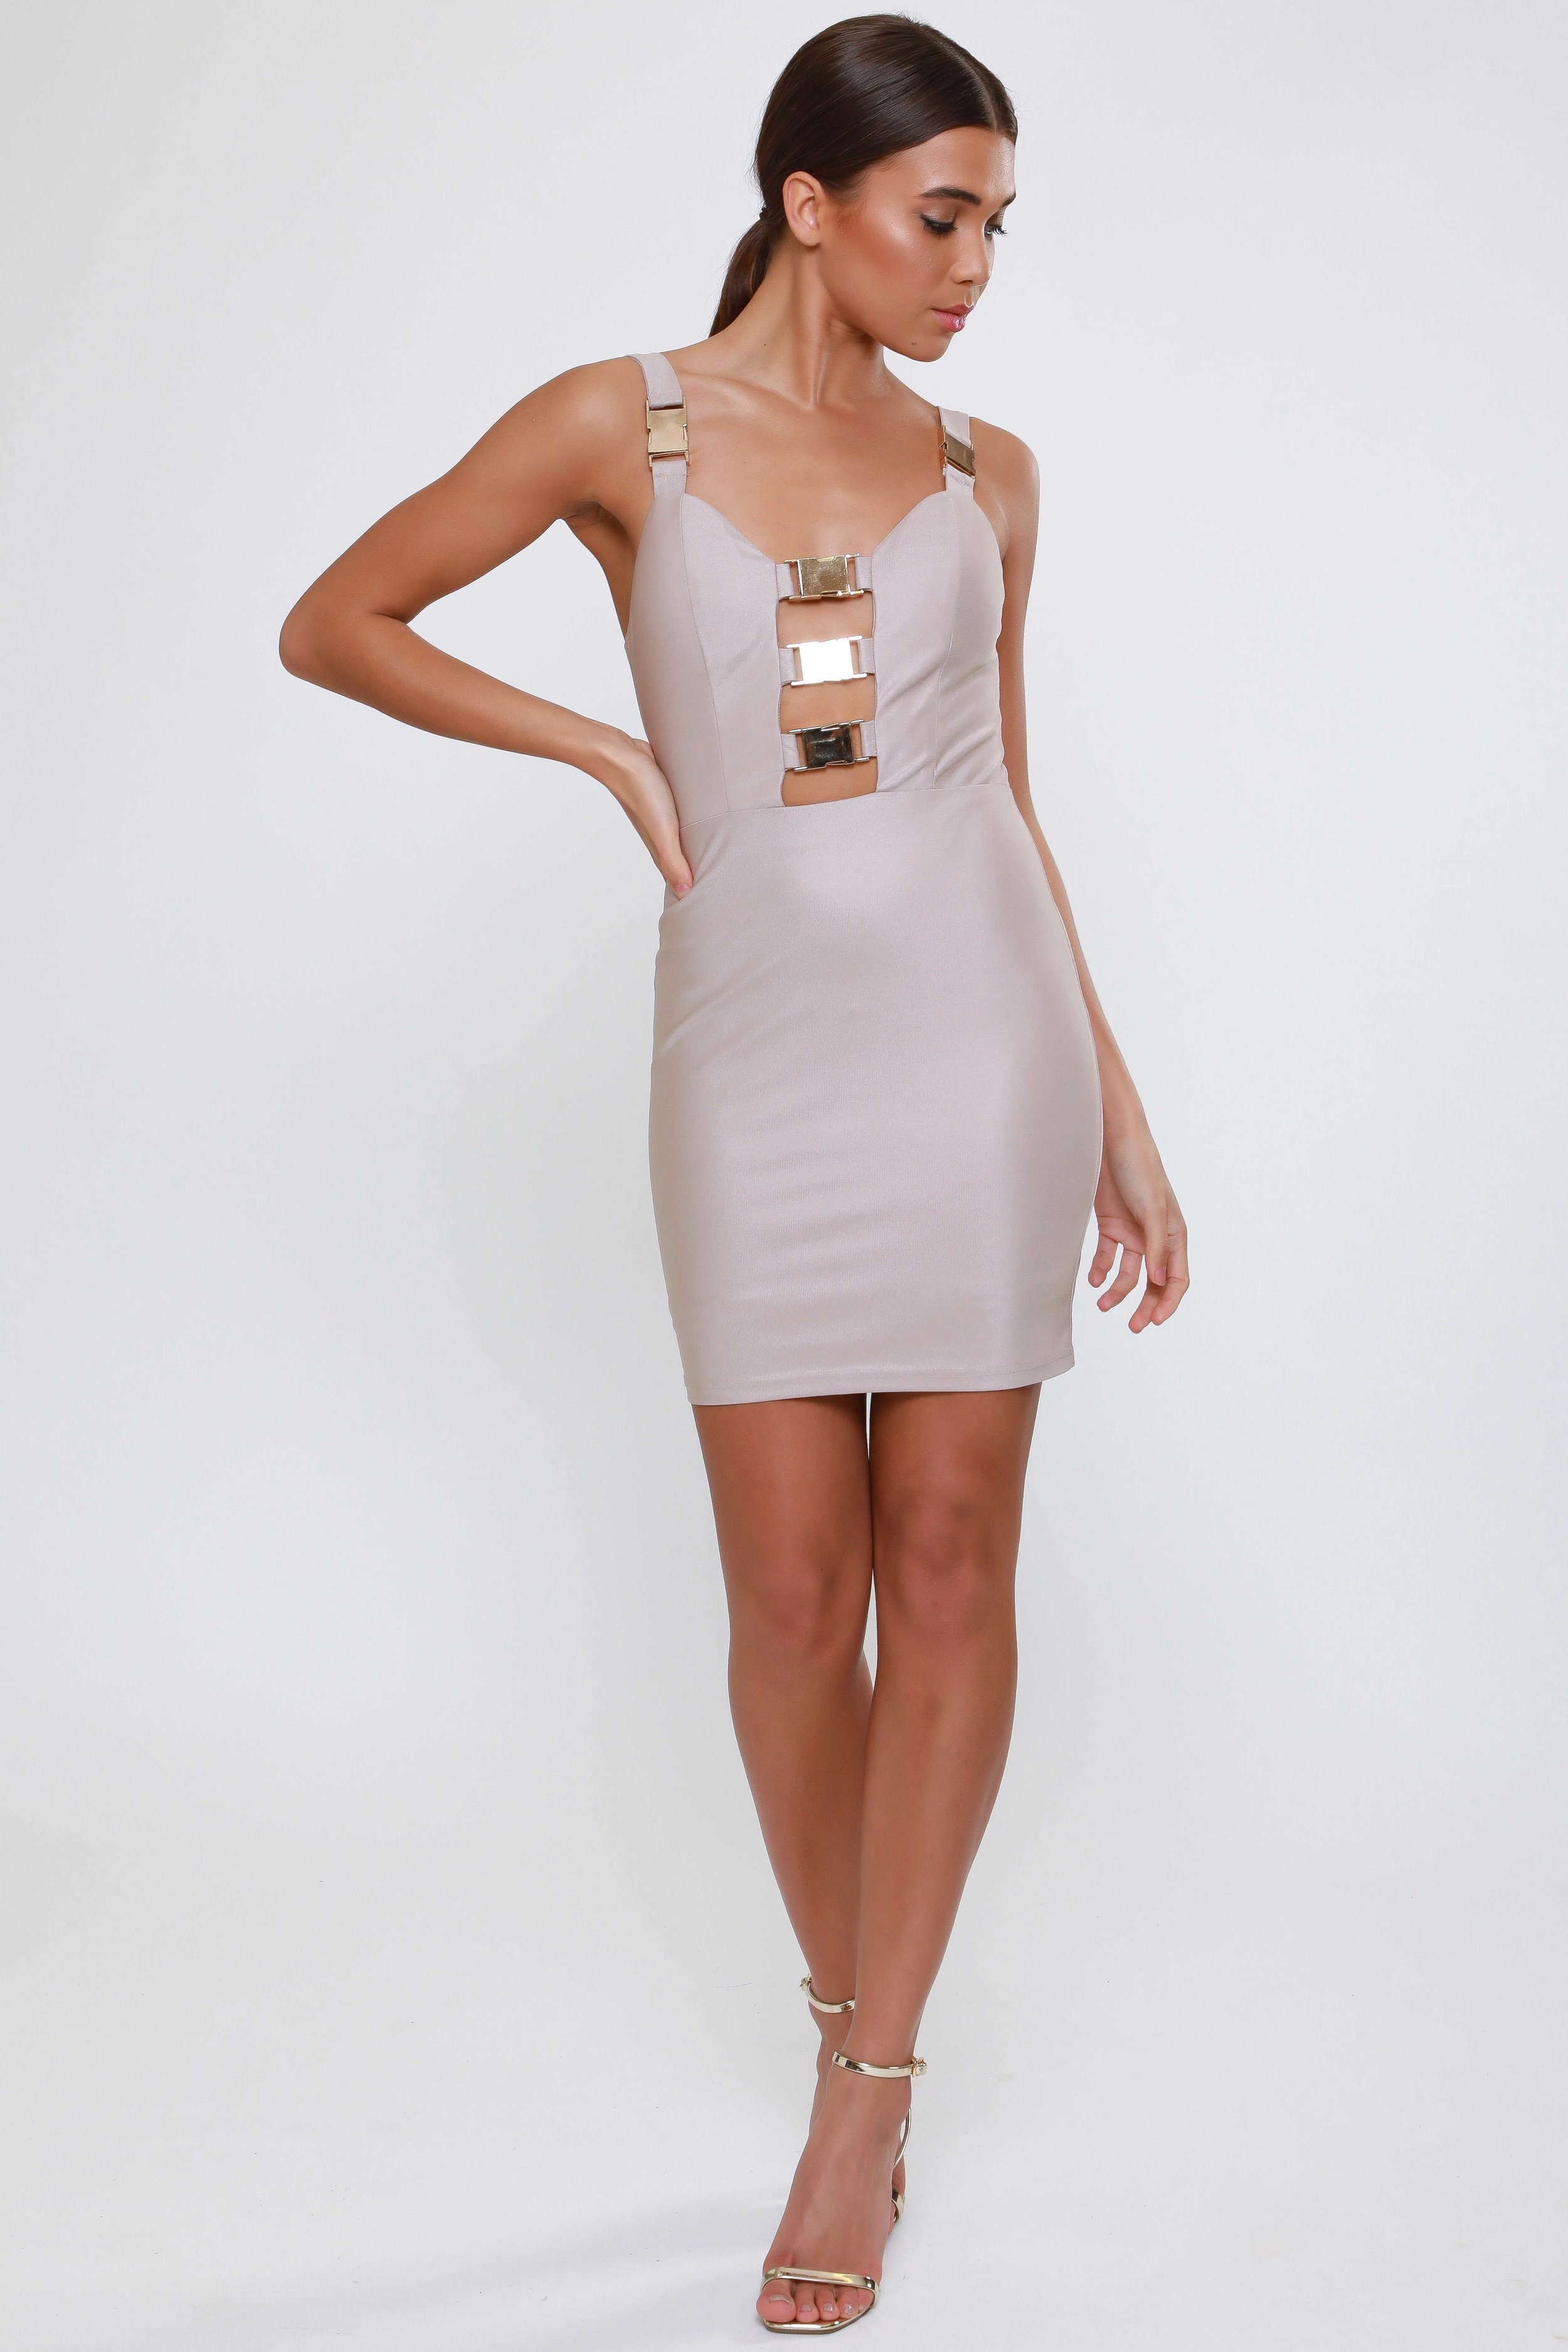 Gold Hardware Clasp Detail  Bodycon Dress   £49.00